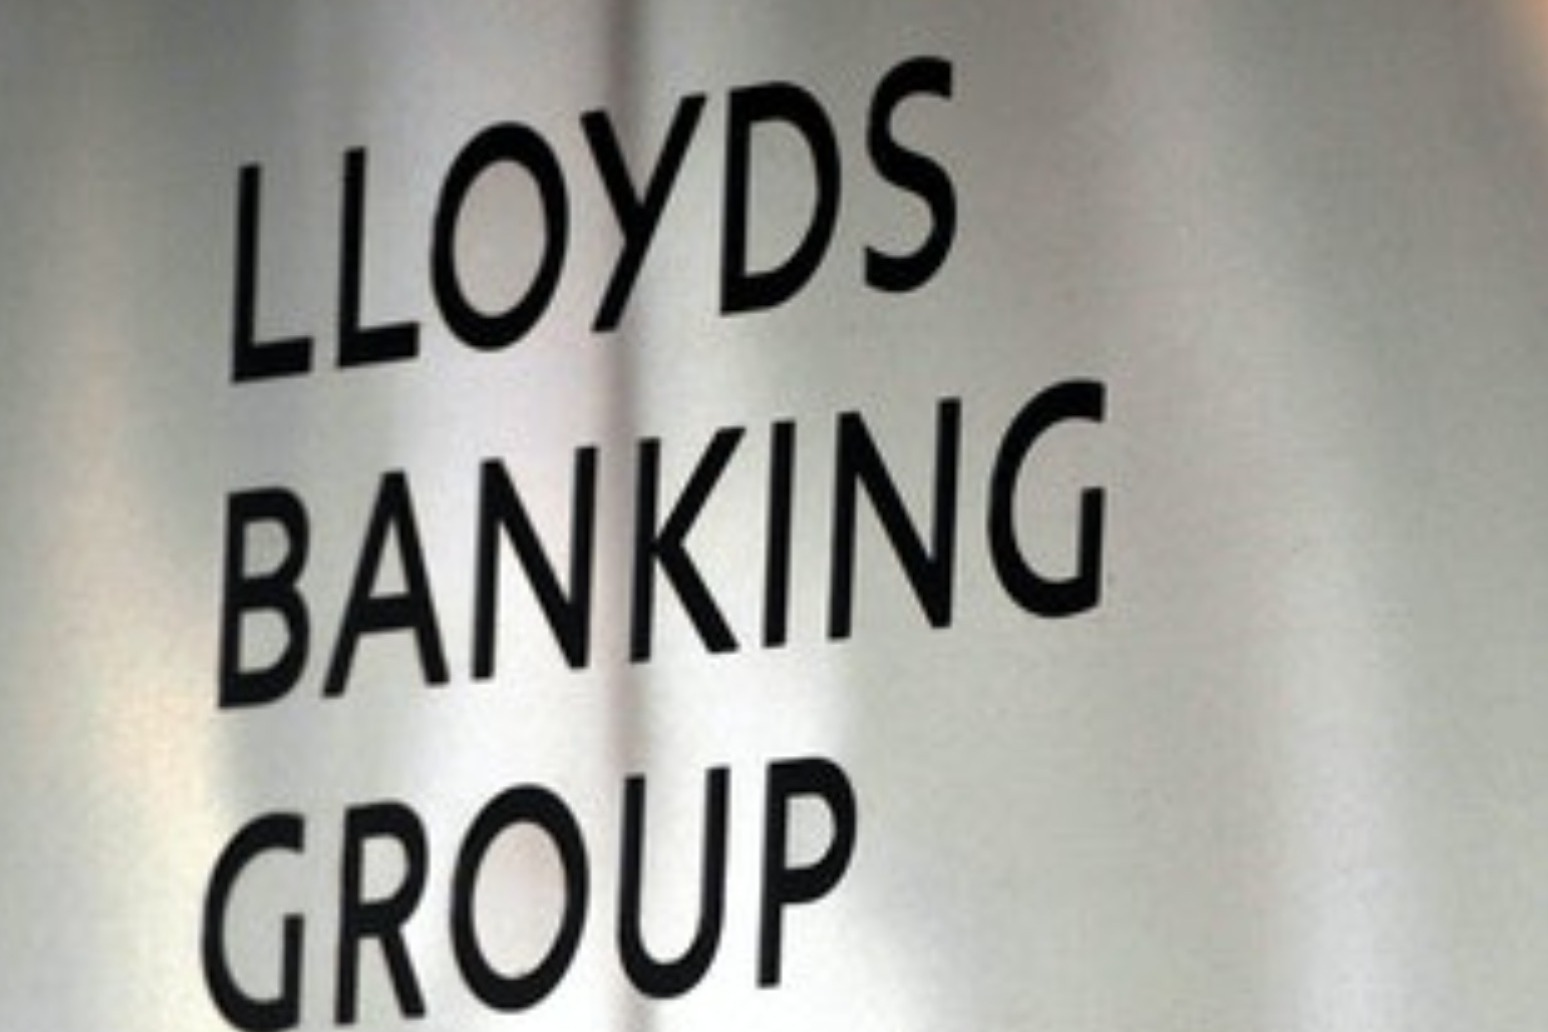 Lloyds Banking Group to cut another 1,070 jobs